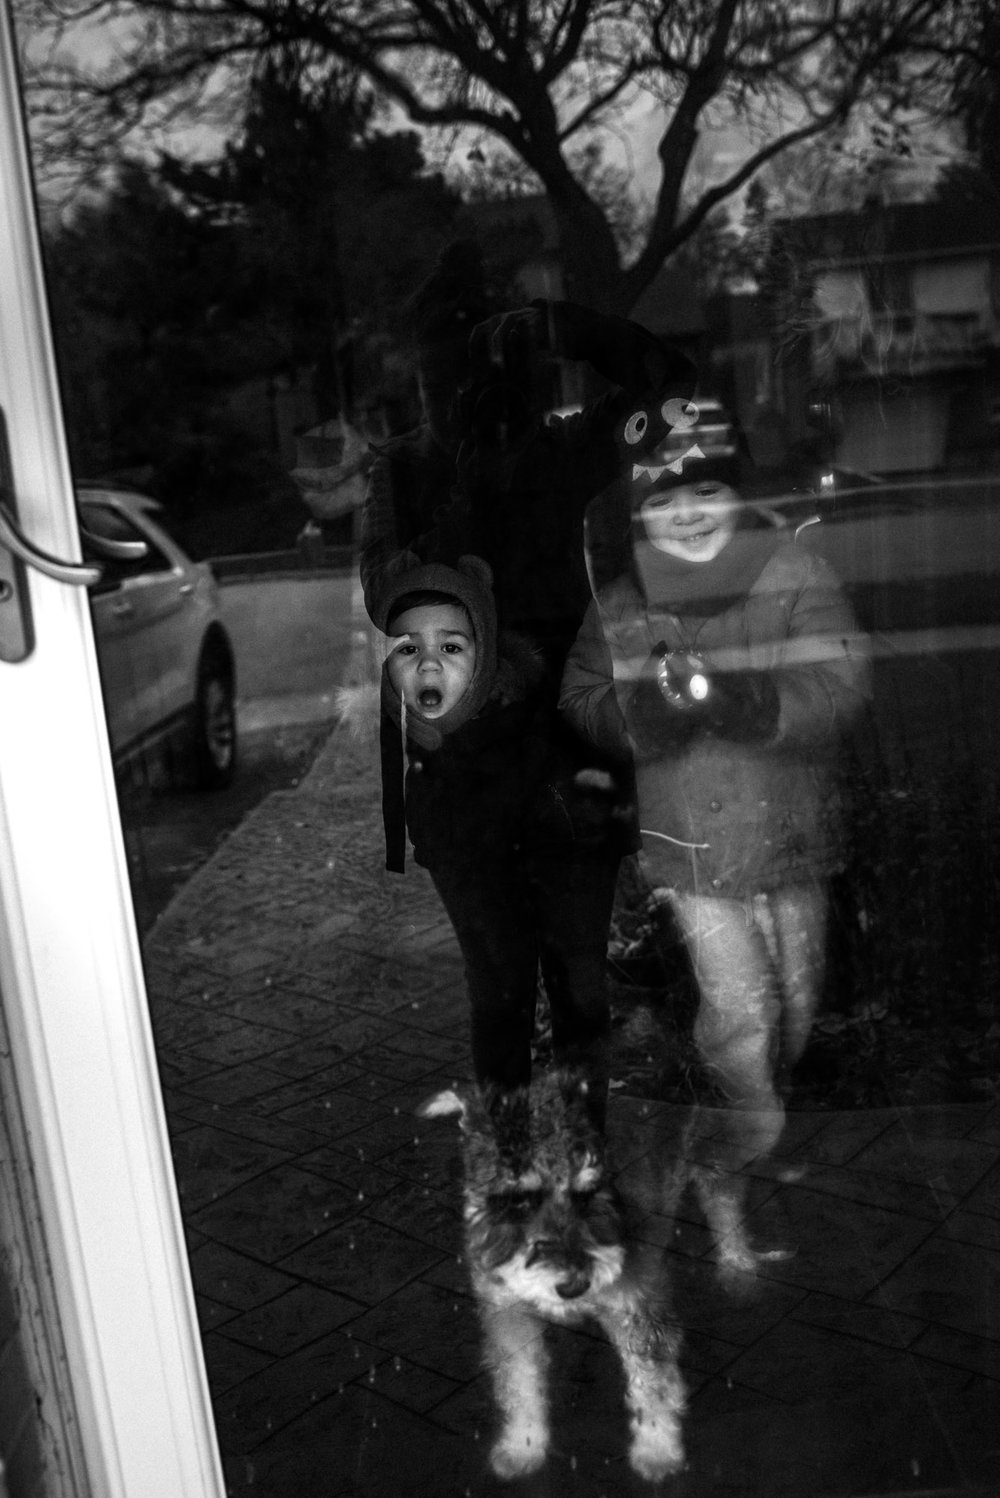 children's faces in black and white through the outside door